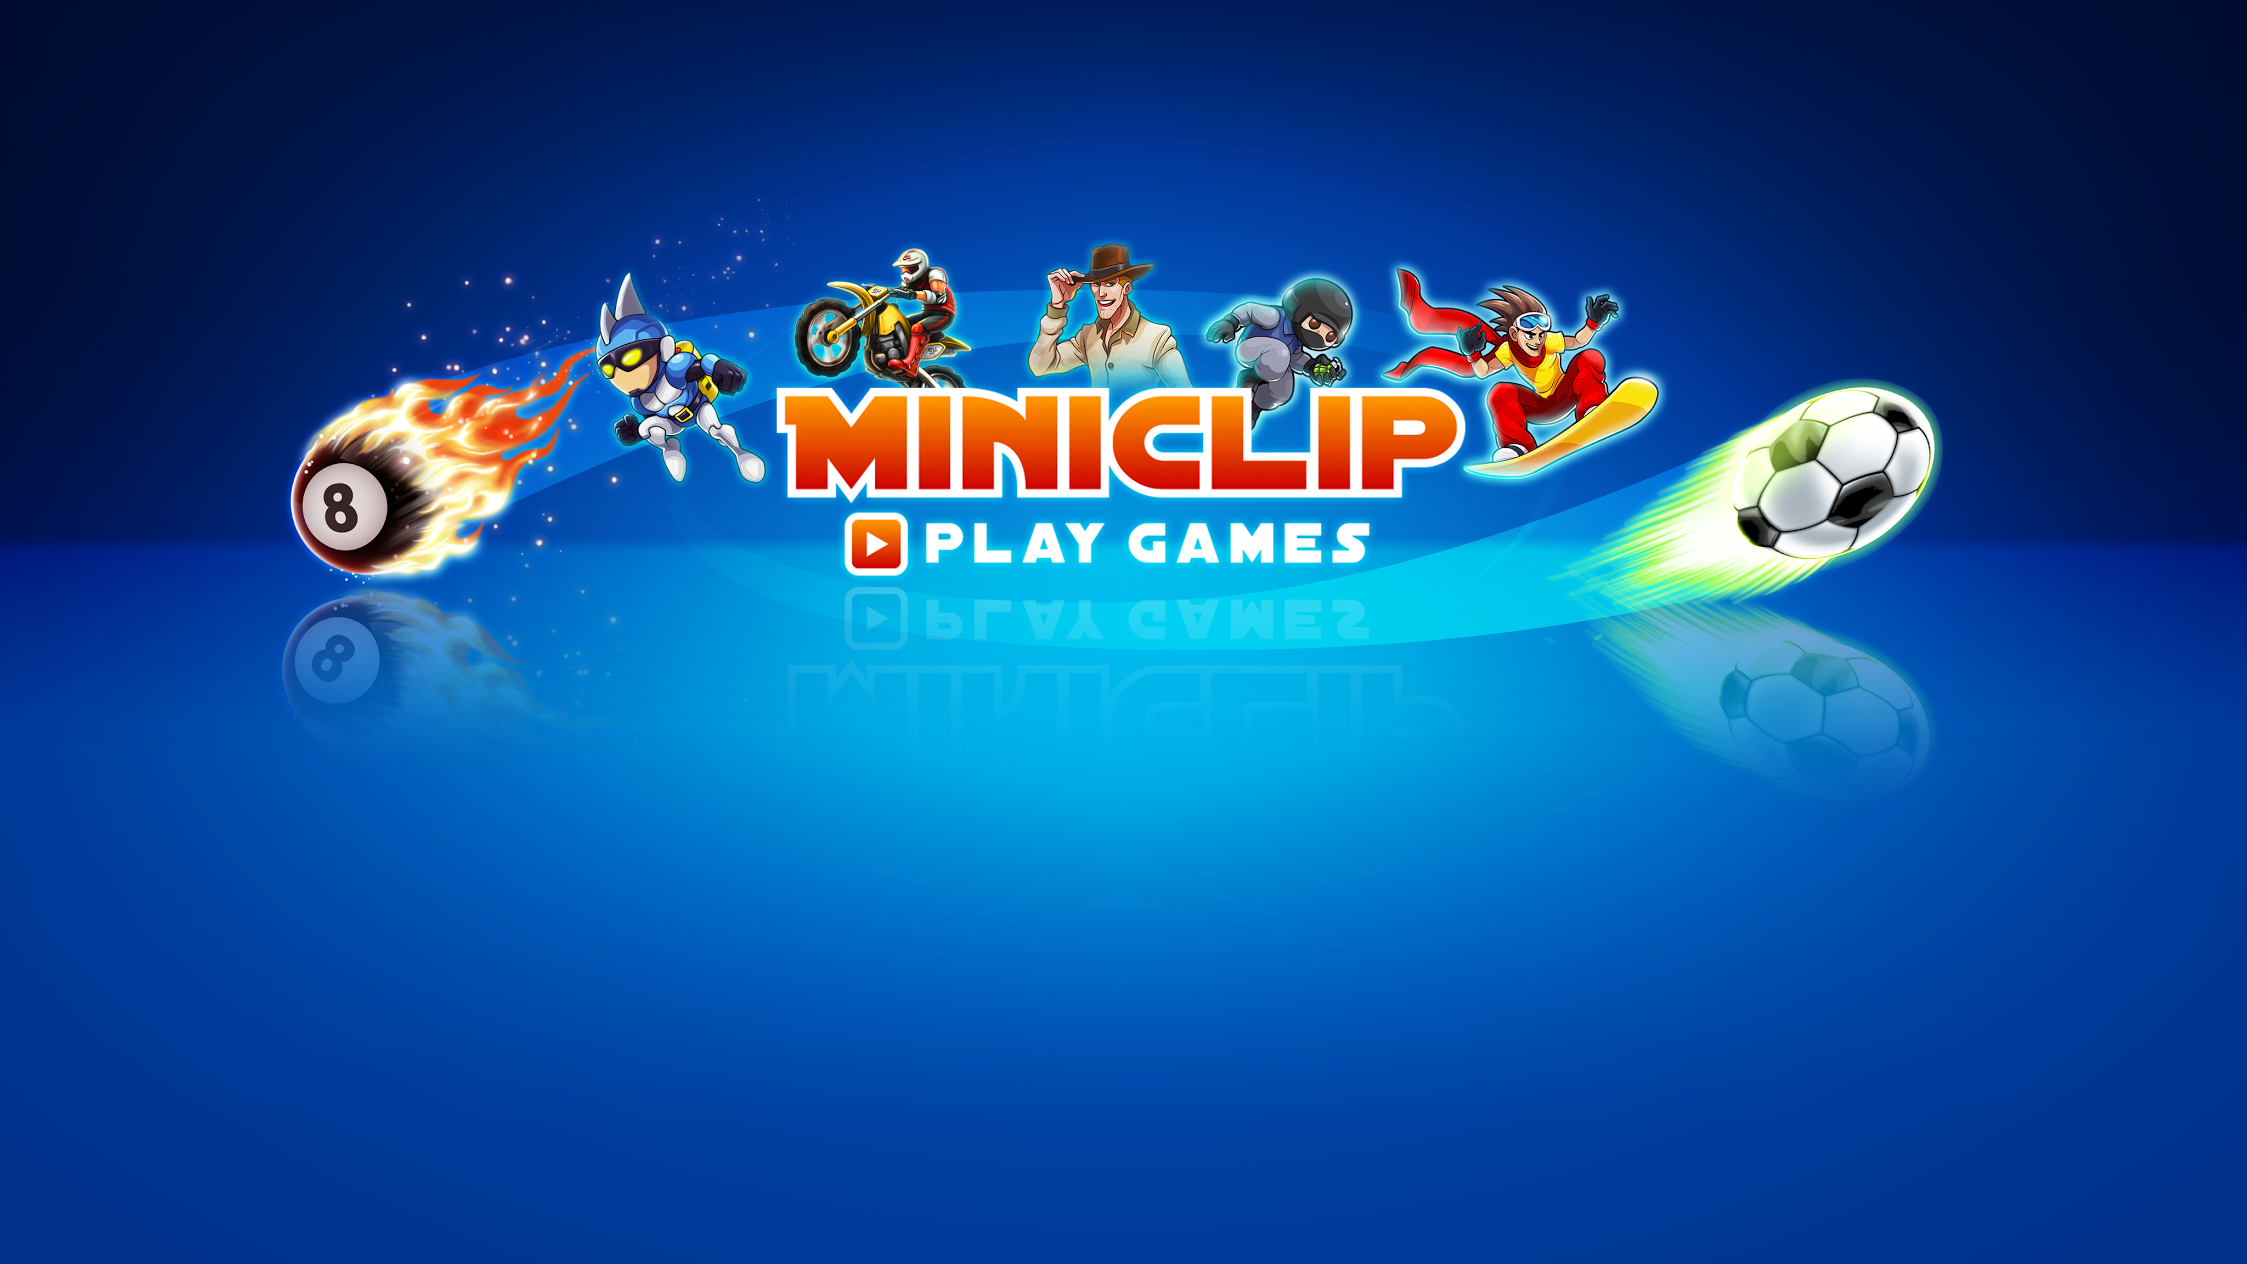 Miniclip Play Free Online Miniclip Games